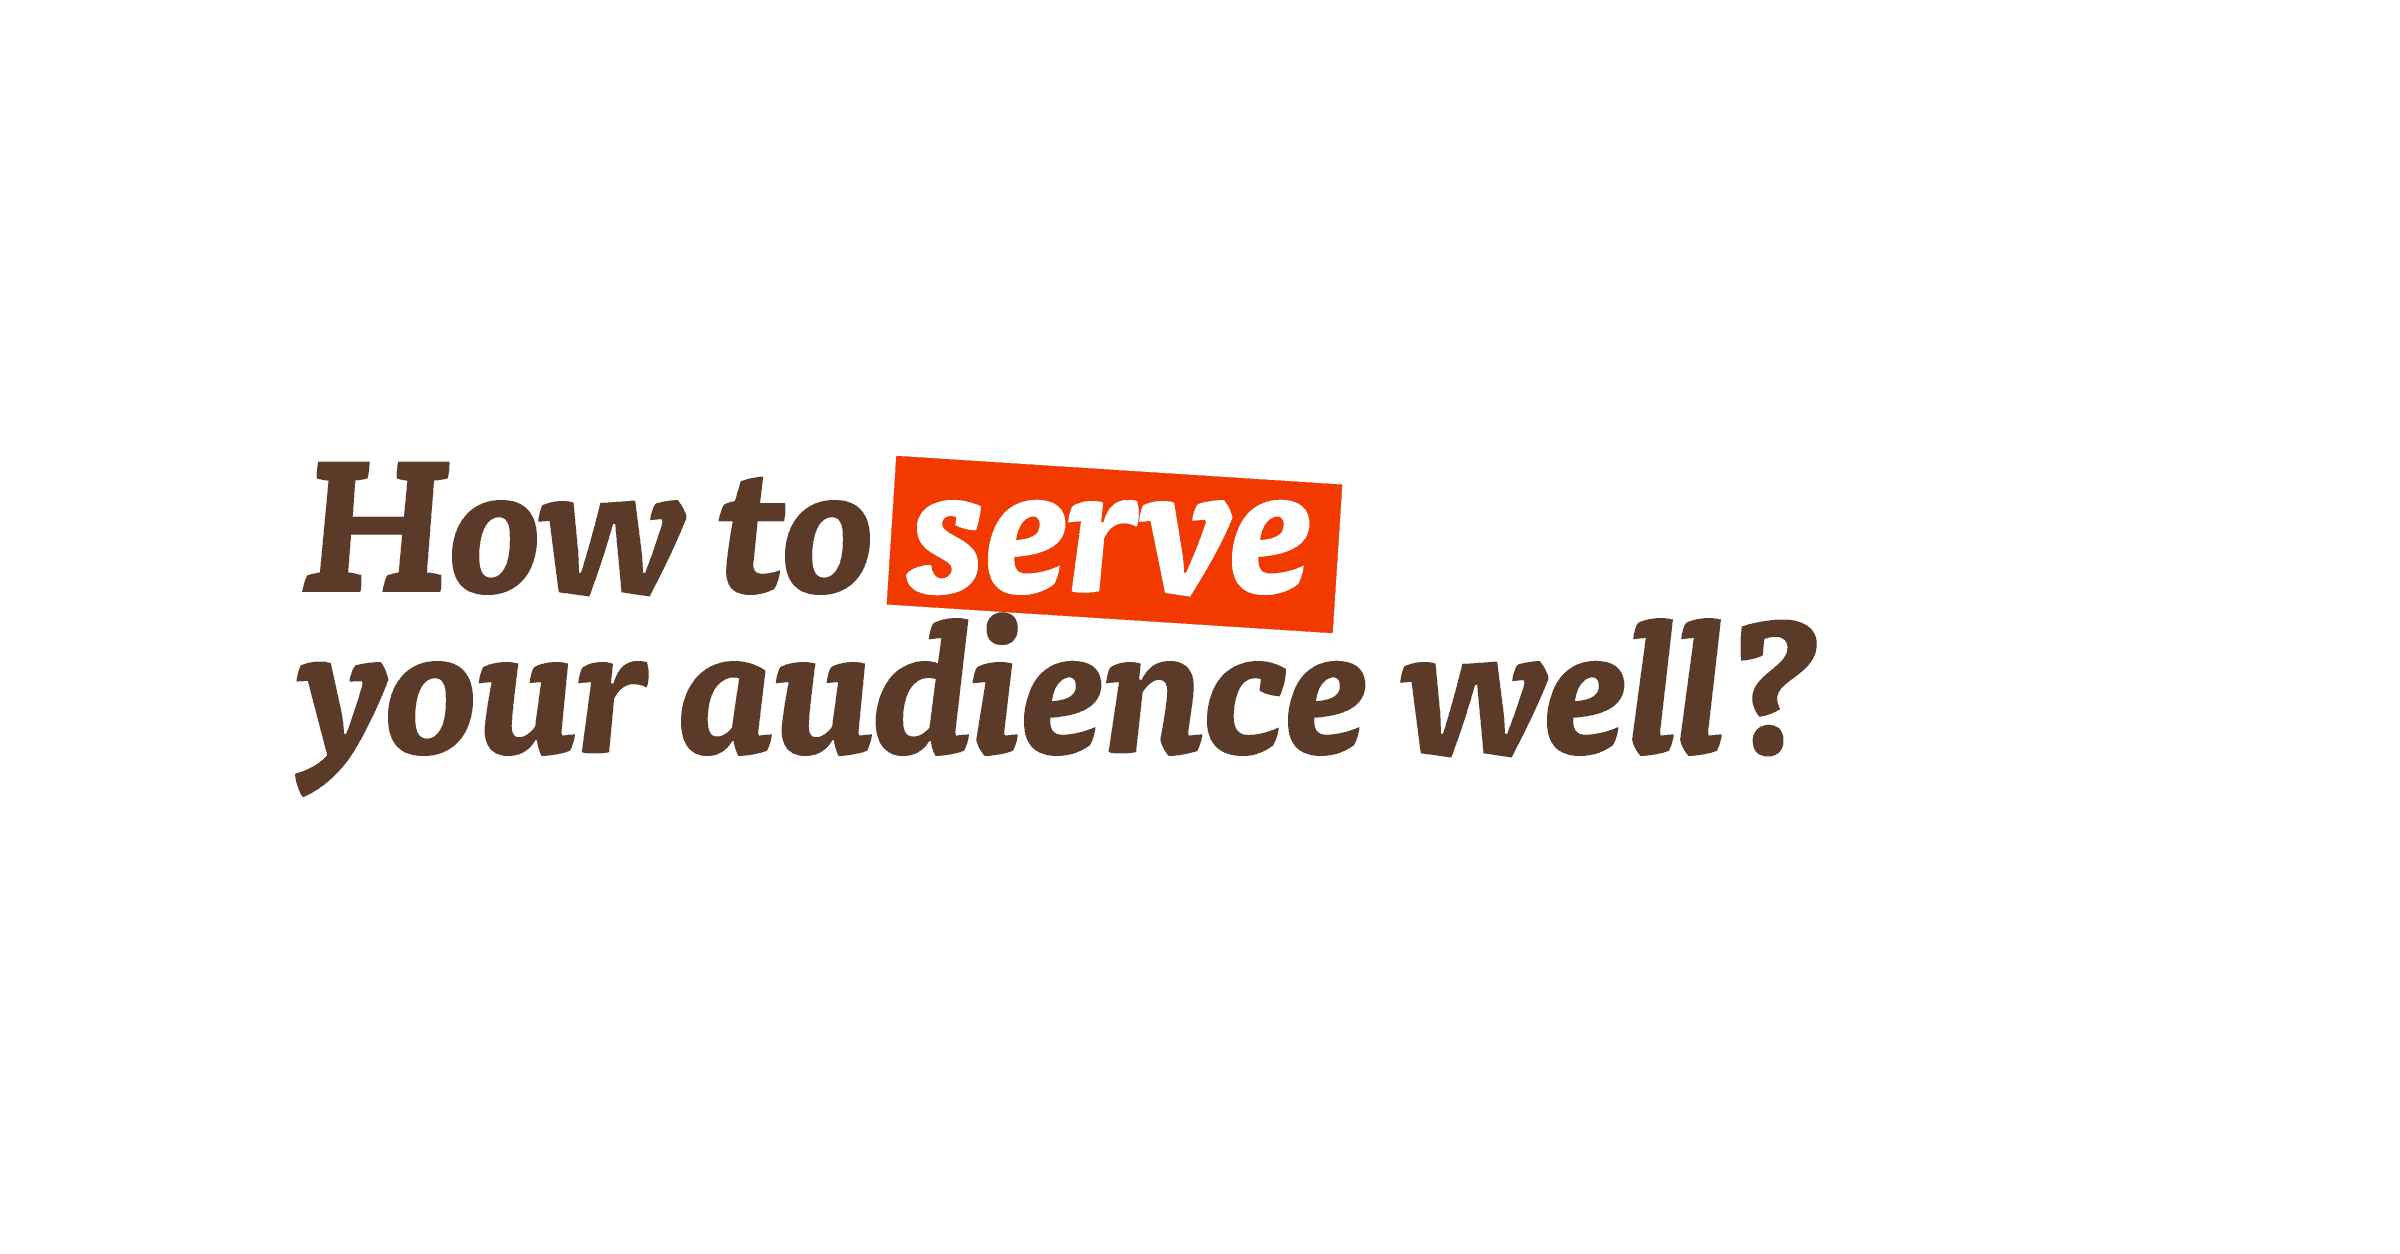 How to serve your audience well